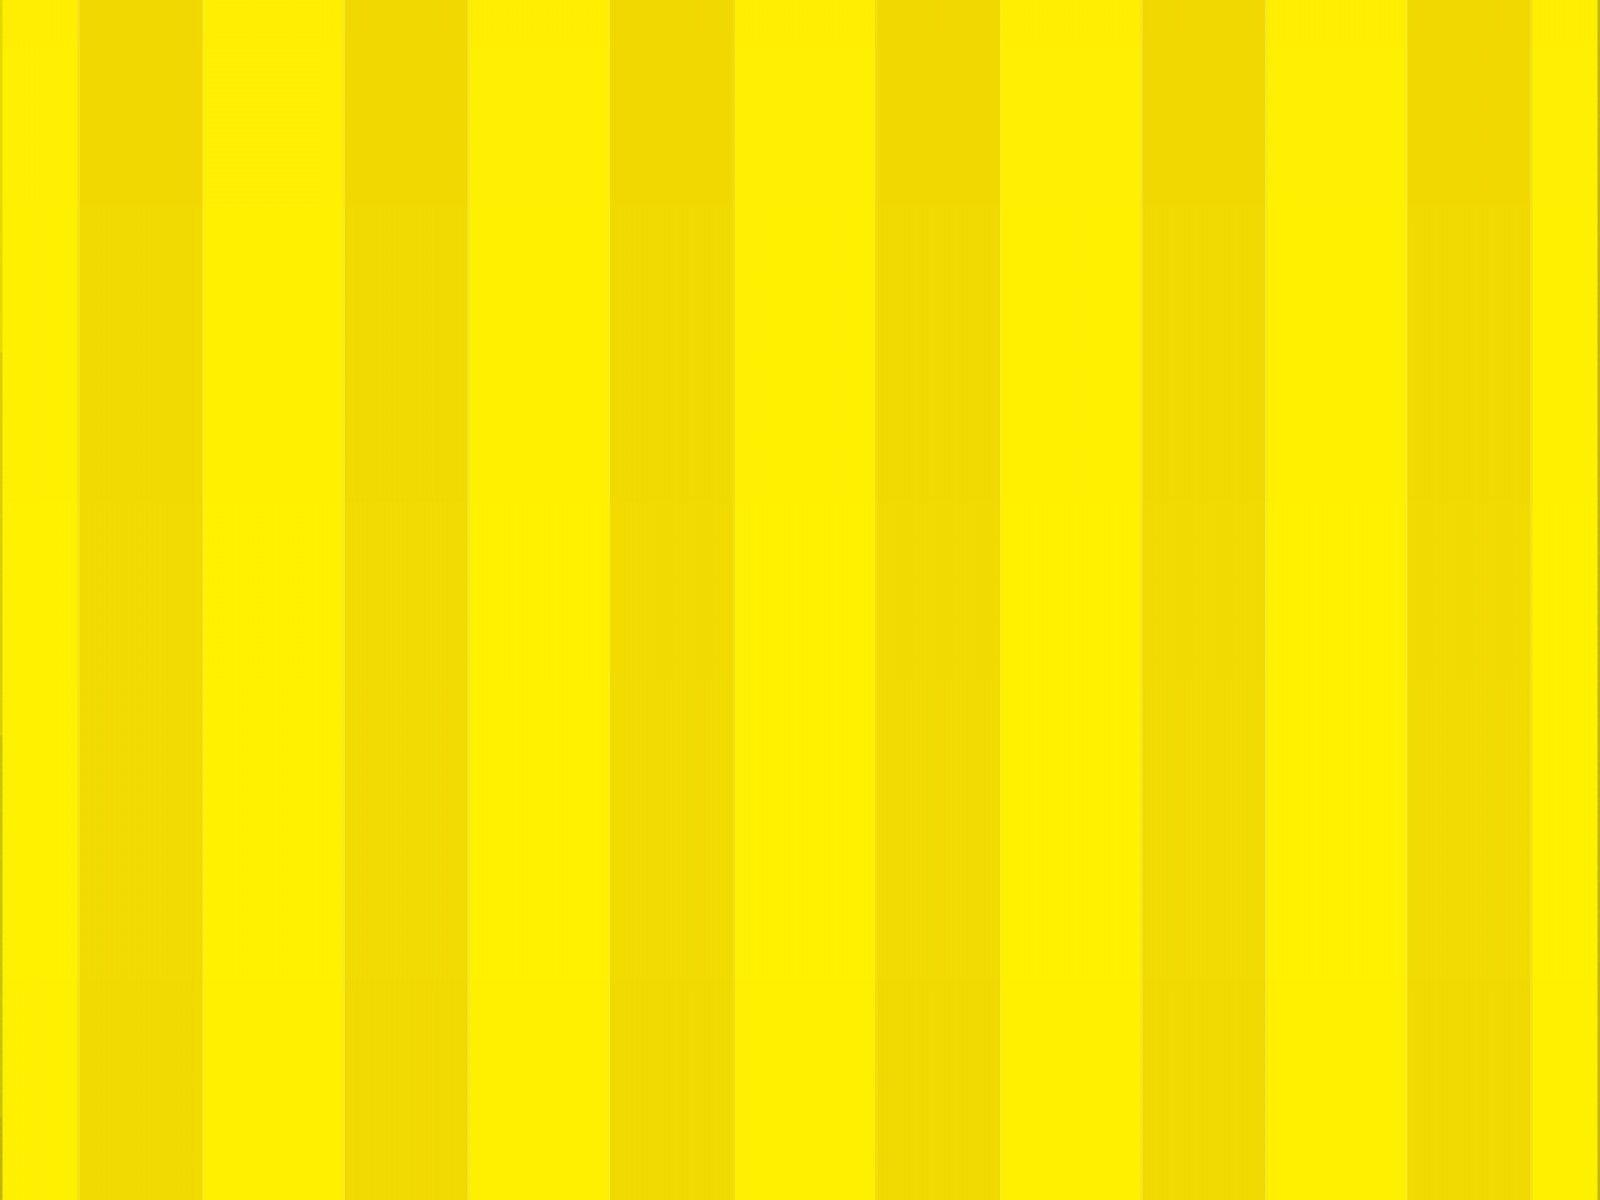 Wallpapers For Bright Yellow Wallpaper